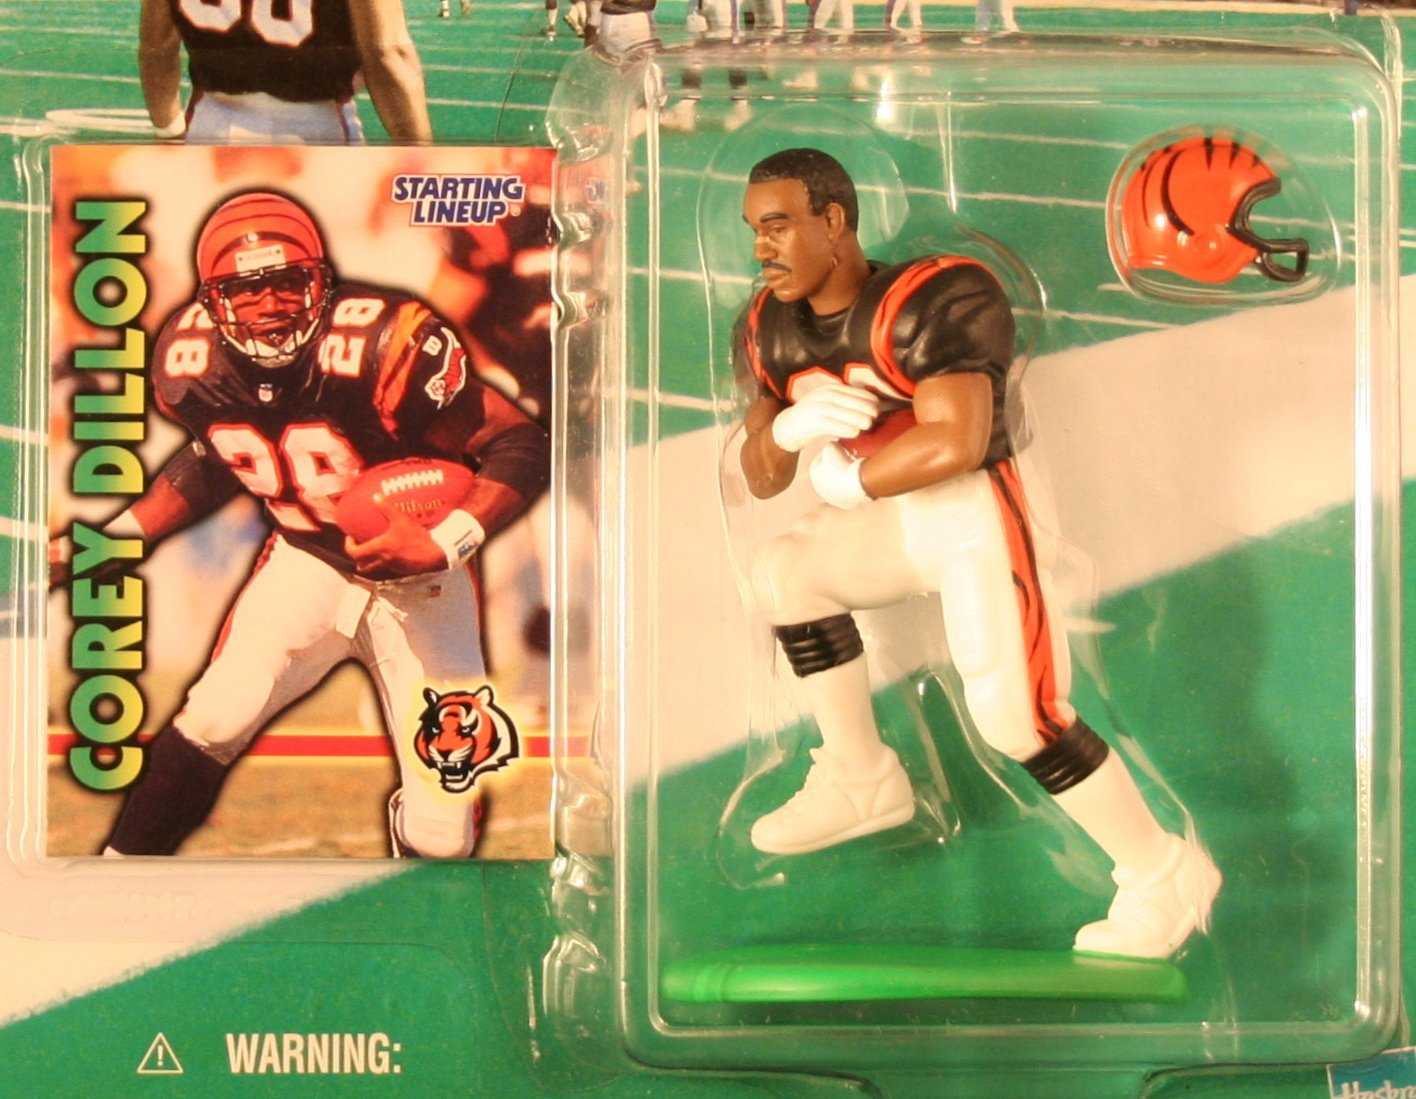 COREY DILLON / CINCINNATI BENGALS 1999-2000 NFL Starting Lineup Action Figure & Exclusive NFL Collector Trading Card